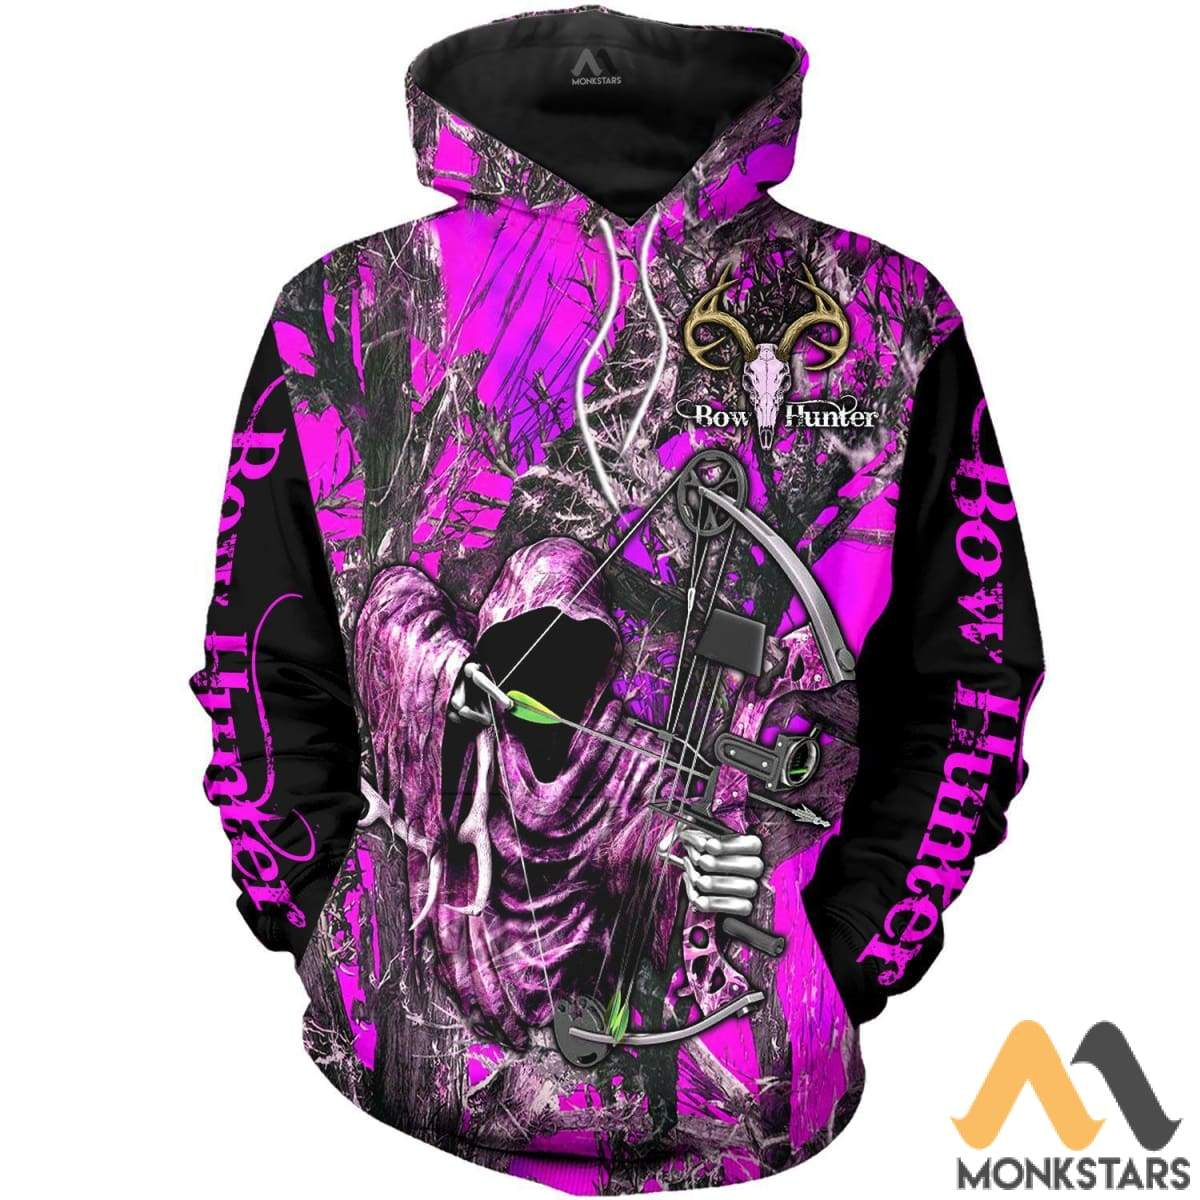 3ec7d818f Grim Reaper Bow Hunter Camo 3D All Over Printed Shirts For Men   Women  Hoodie